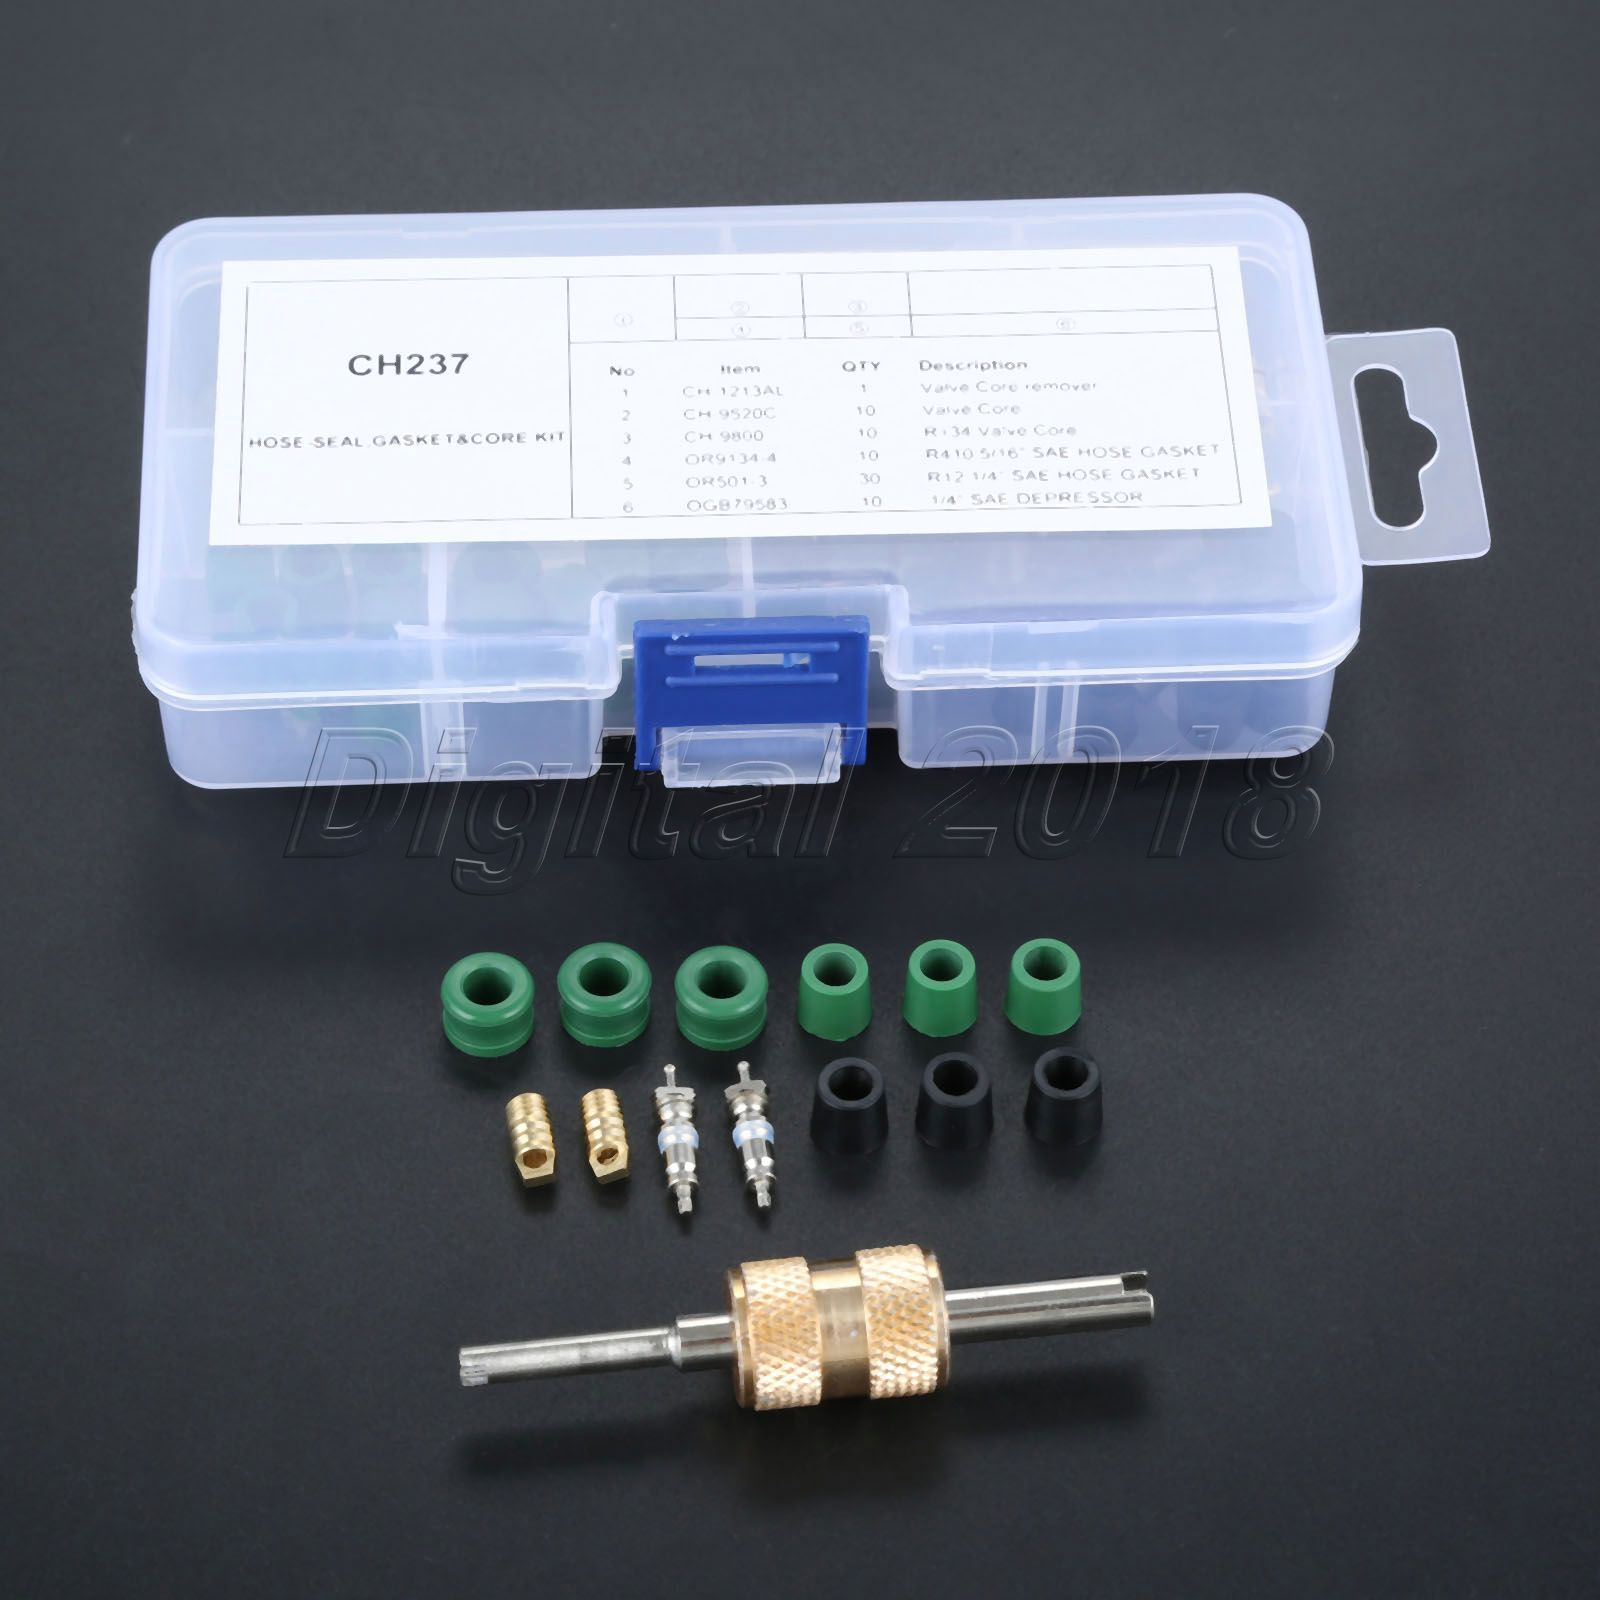 Air Conditioning Removal Tool Kit,Bore Valve Key Tools 71pcs Air Condition Repair Kit Repair Tool+10pcs Valve Cores with 50pcs Hose Gaskets+10pc Valves